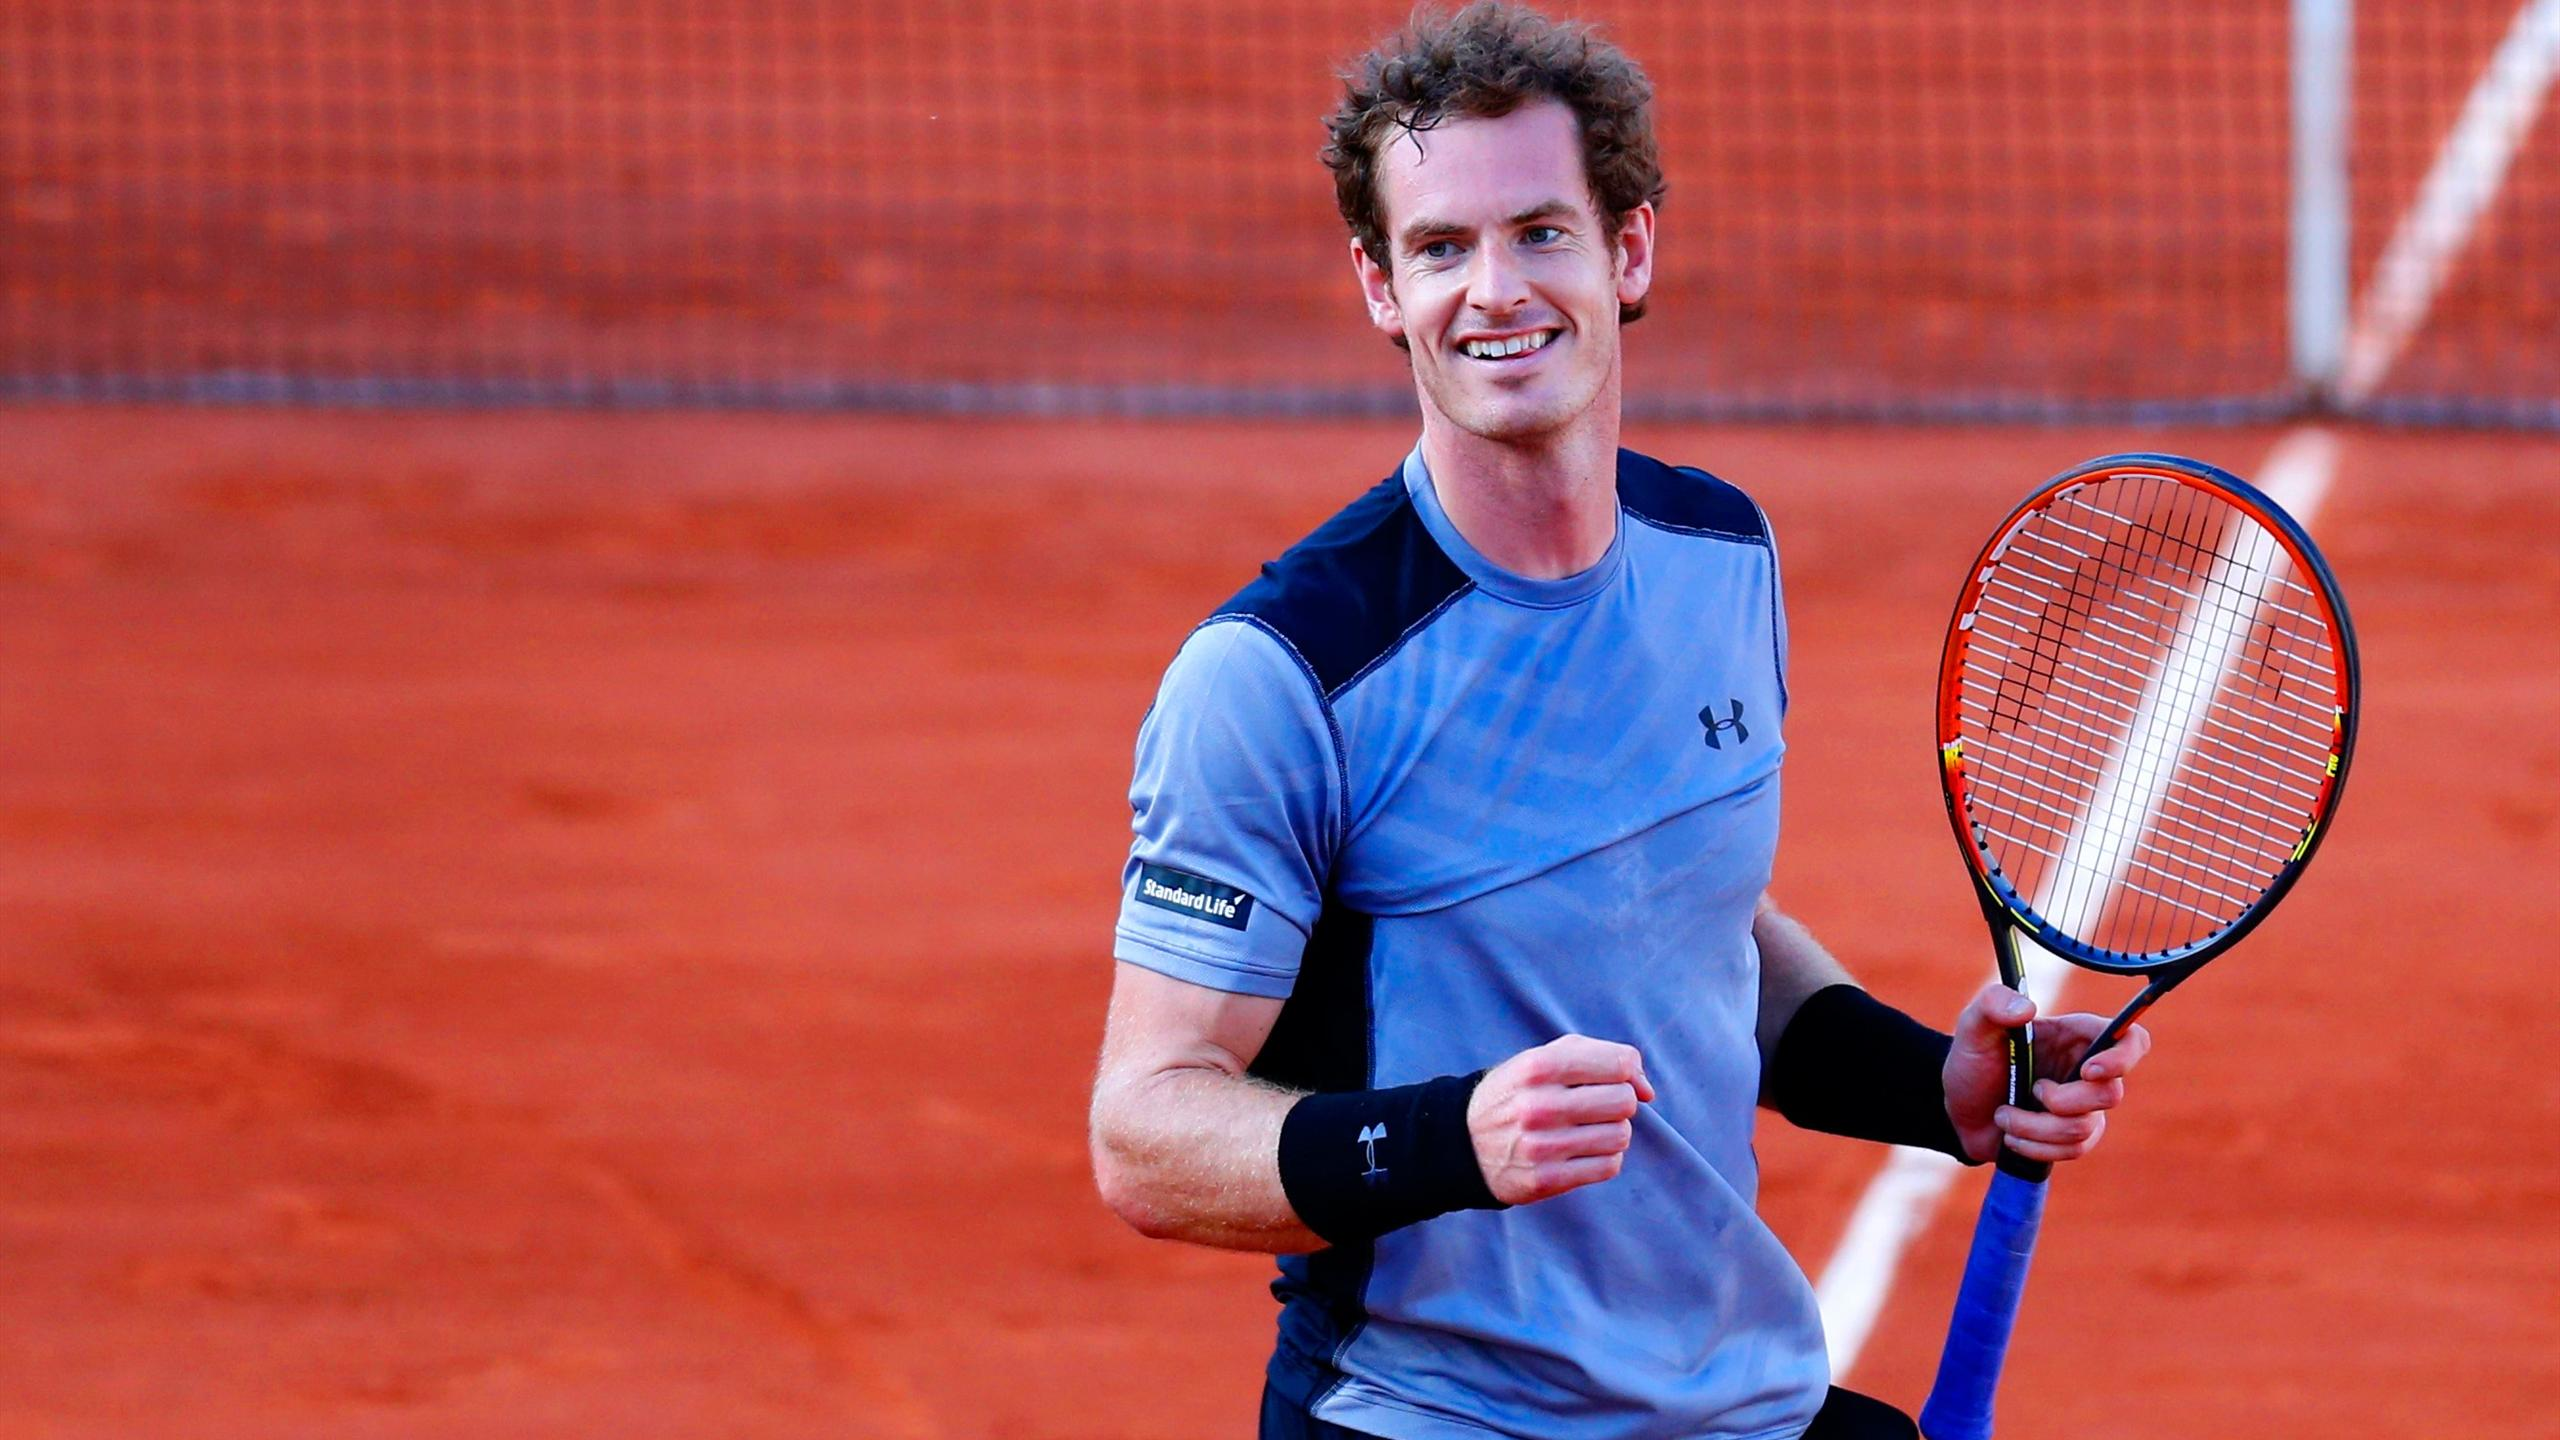 Britain's Andy Murray playing at the French Open at Roland Garros